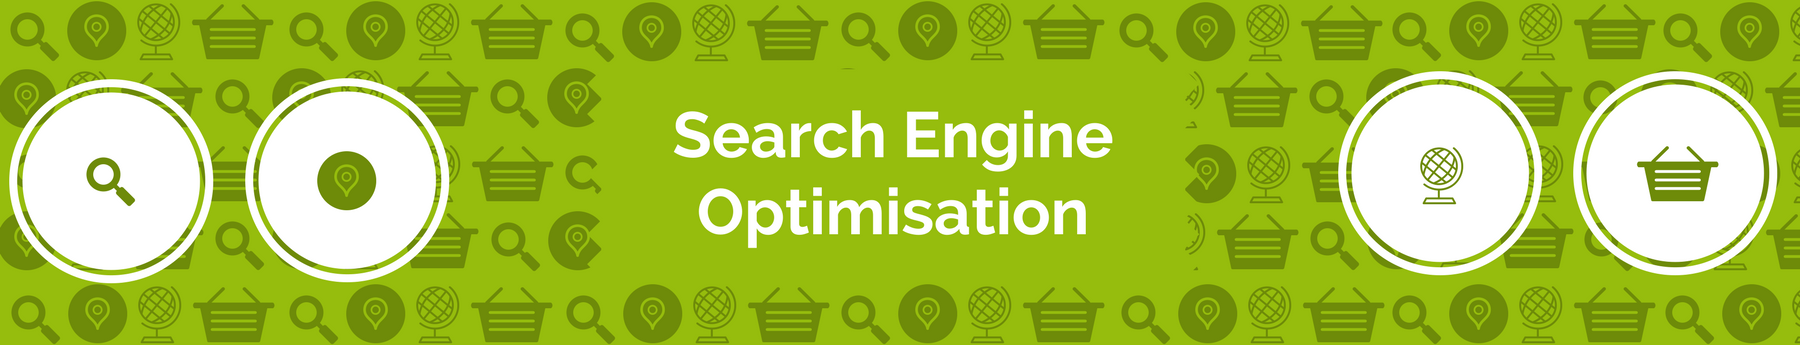 Search Engine Optimisation - SEO agency Bolton